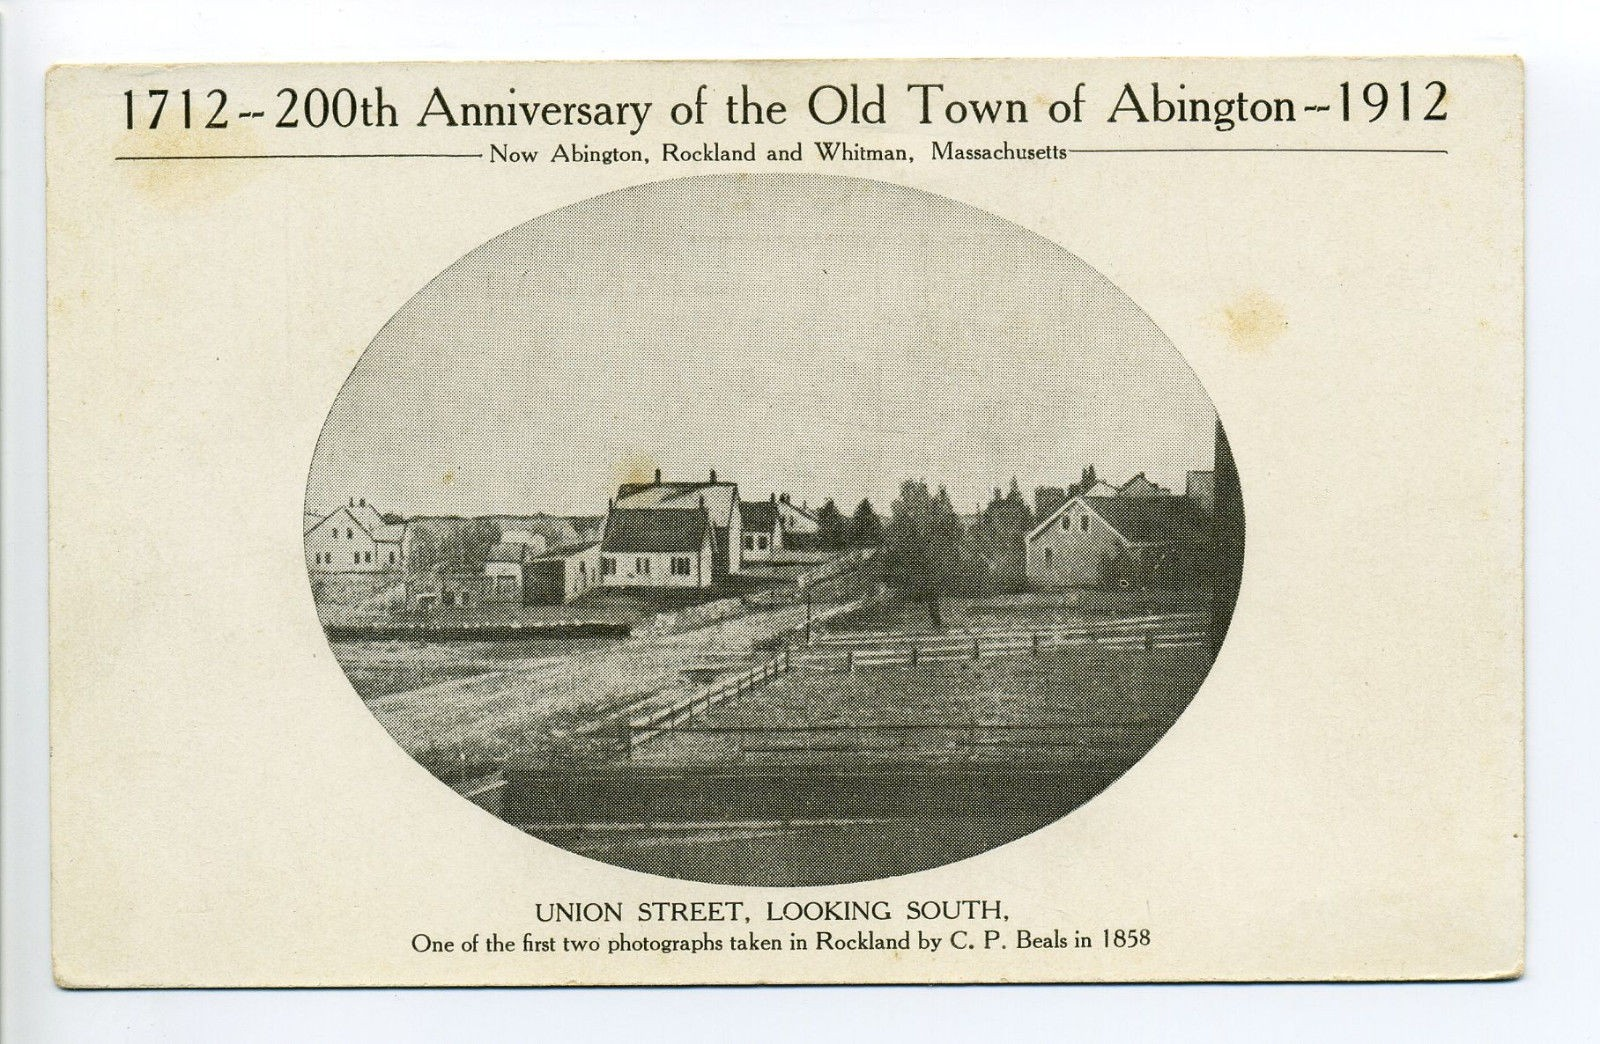 1712 200th Anniversary Of The Old Town Of Abington 1912, Union Street Looking South